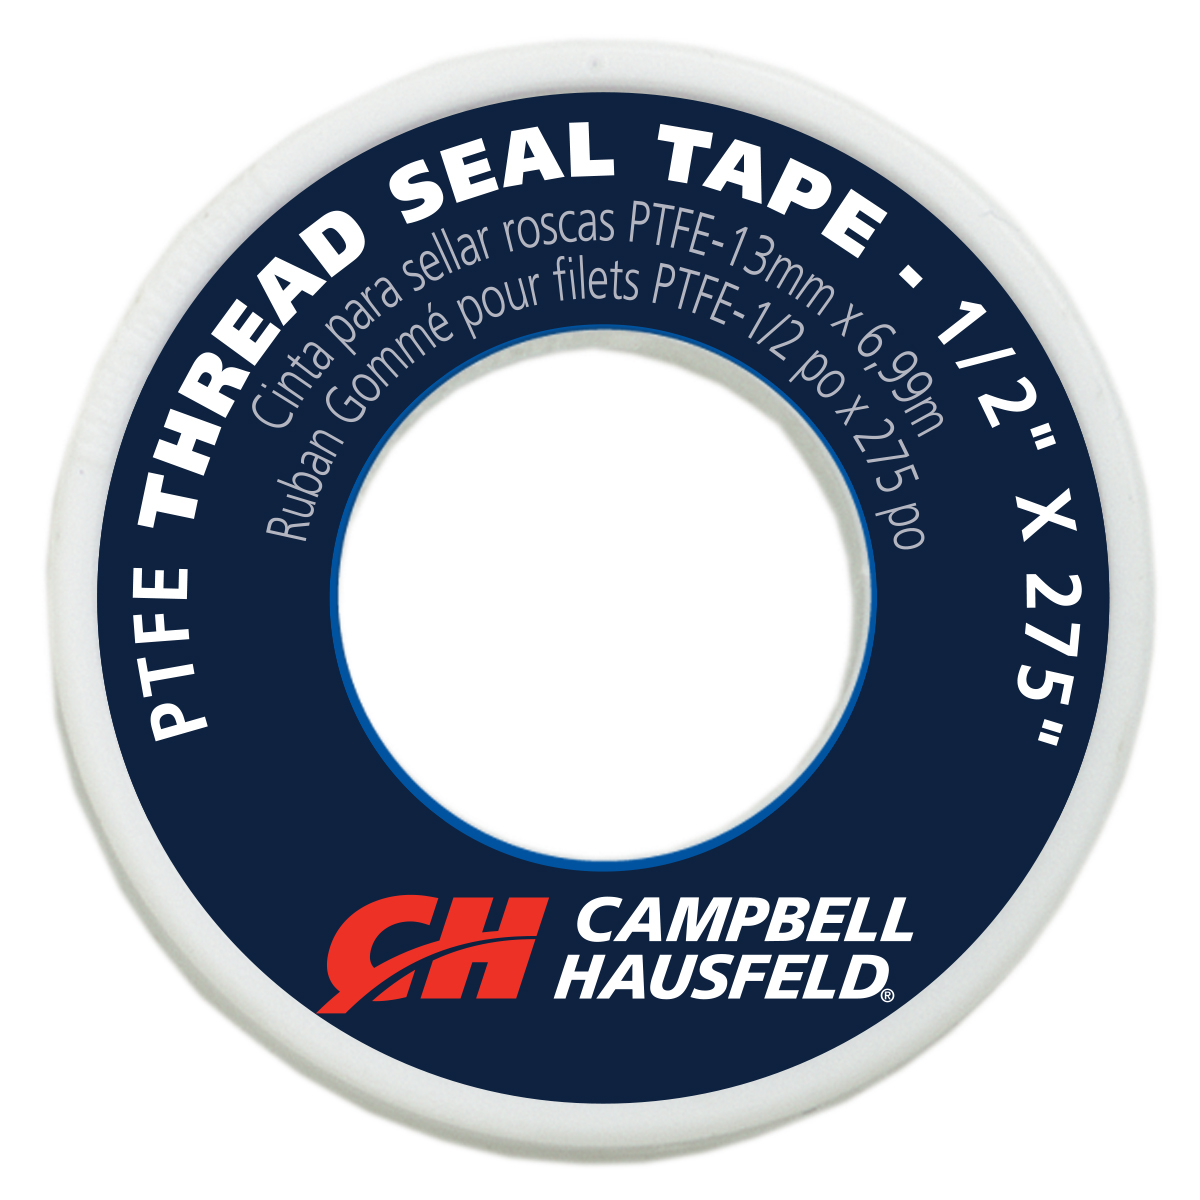 Campbell Hausfeld PTFE Tape Thread Sealant (MP513600AV) product image center